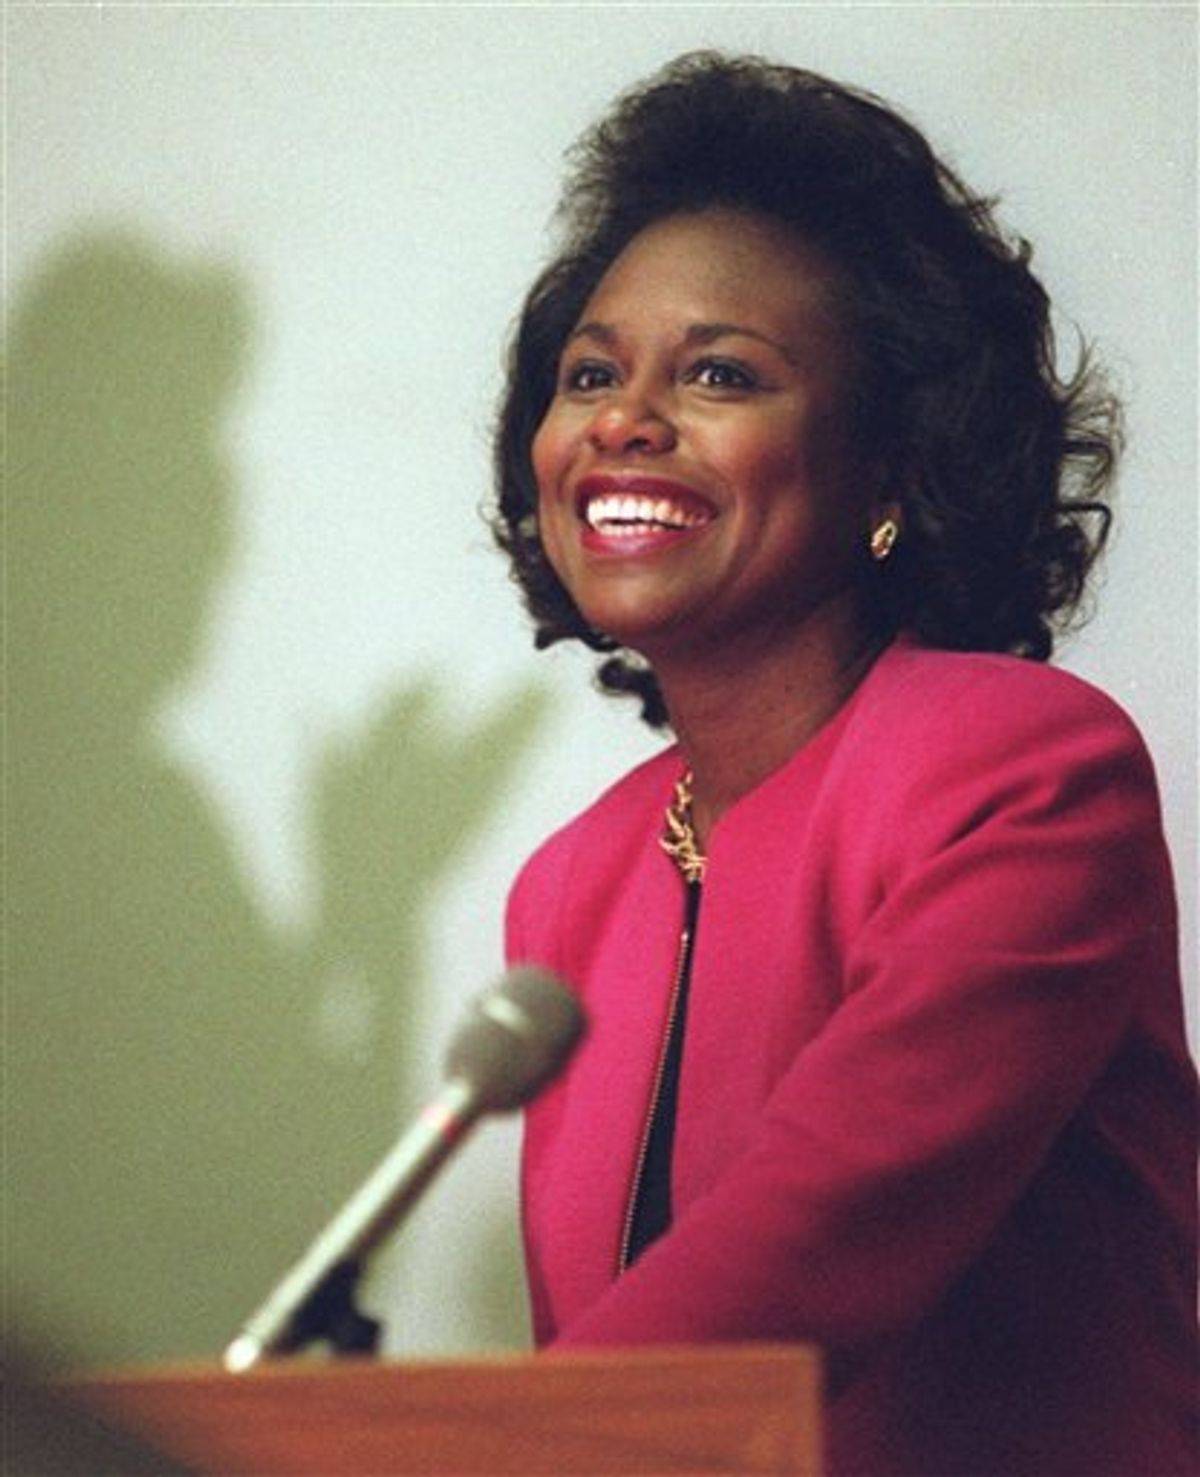 FILE - In this April 8, 1993, file photo, Anita Hill is seen in Cambridge, Mass. Virginia Thomas, wife of Supreme Court Justice Clarence Thomas is asking Hill to apologize for accusing the justice of sexually harassing her, 19 years after Thomas' confirmation hearing spawned a national debate about harassment in the workplace.  (AP Photo/Susan Walsh) (AP)